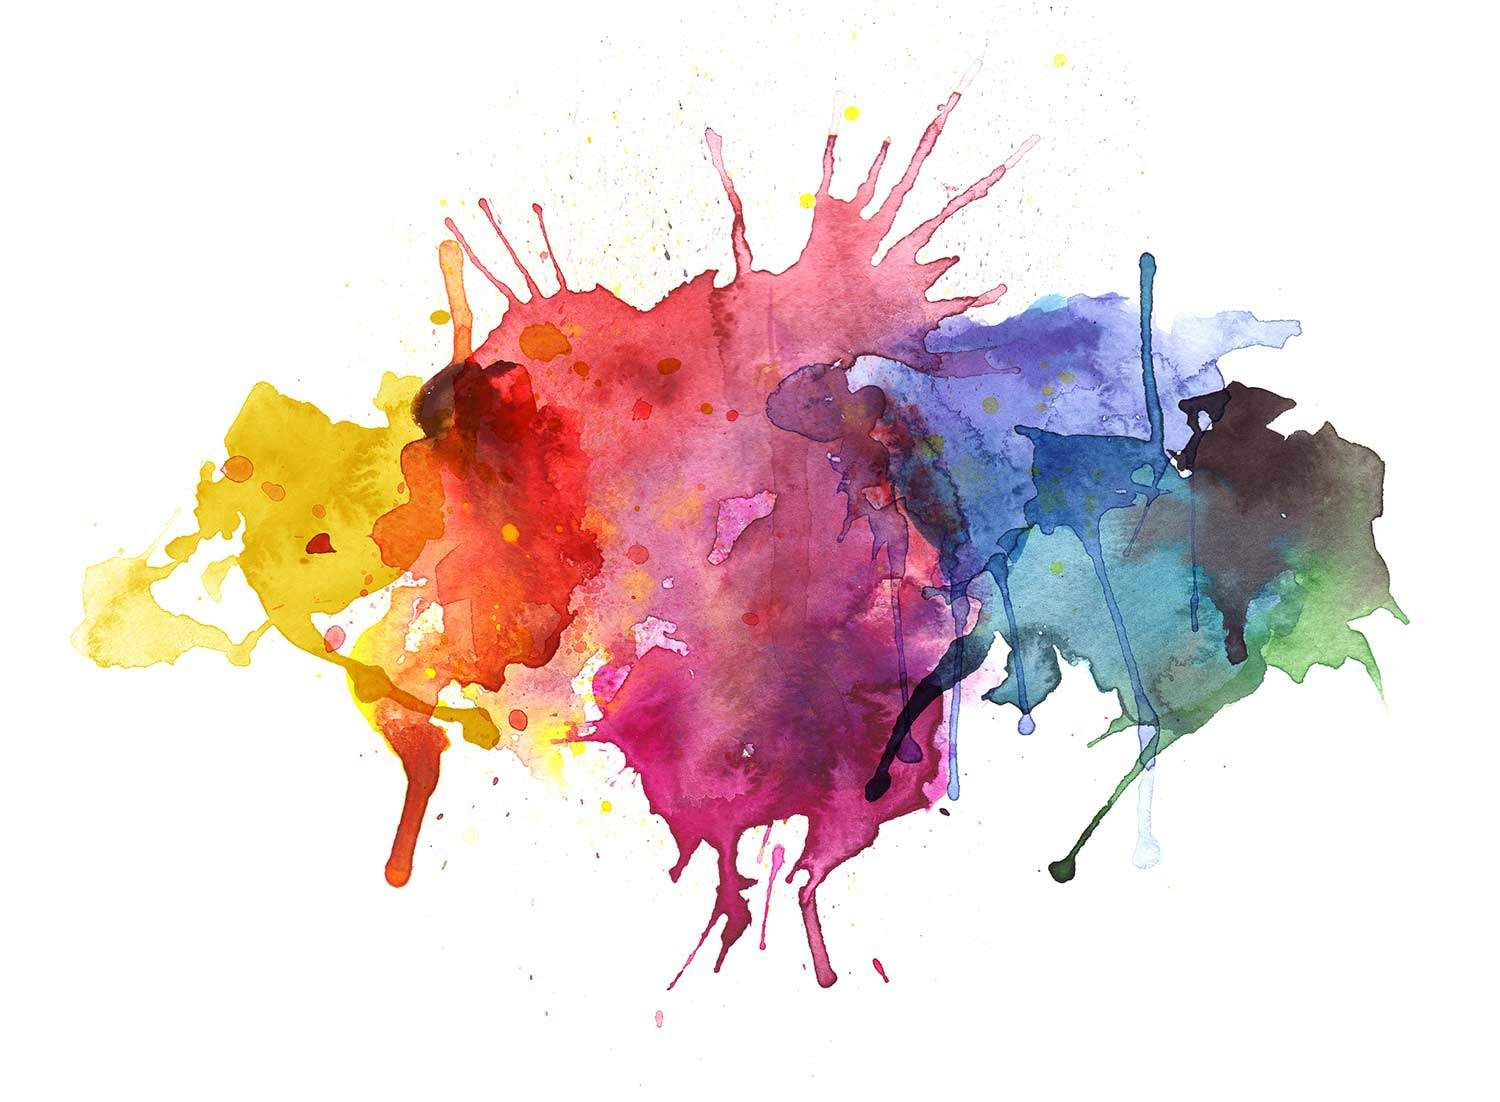 Watercolor Splash 29 Hd Wallpaper Milliwall Ekspresionisme